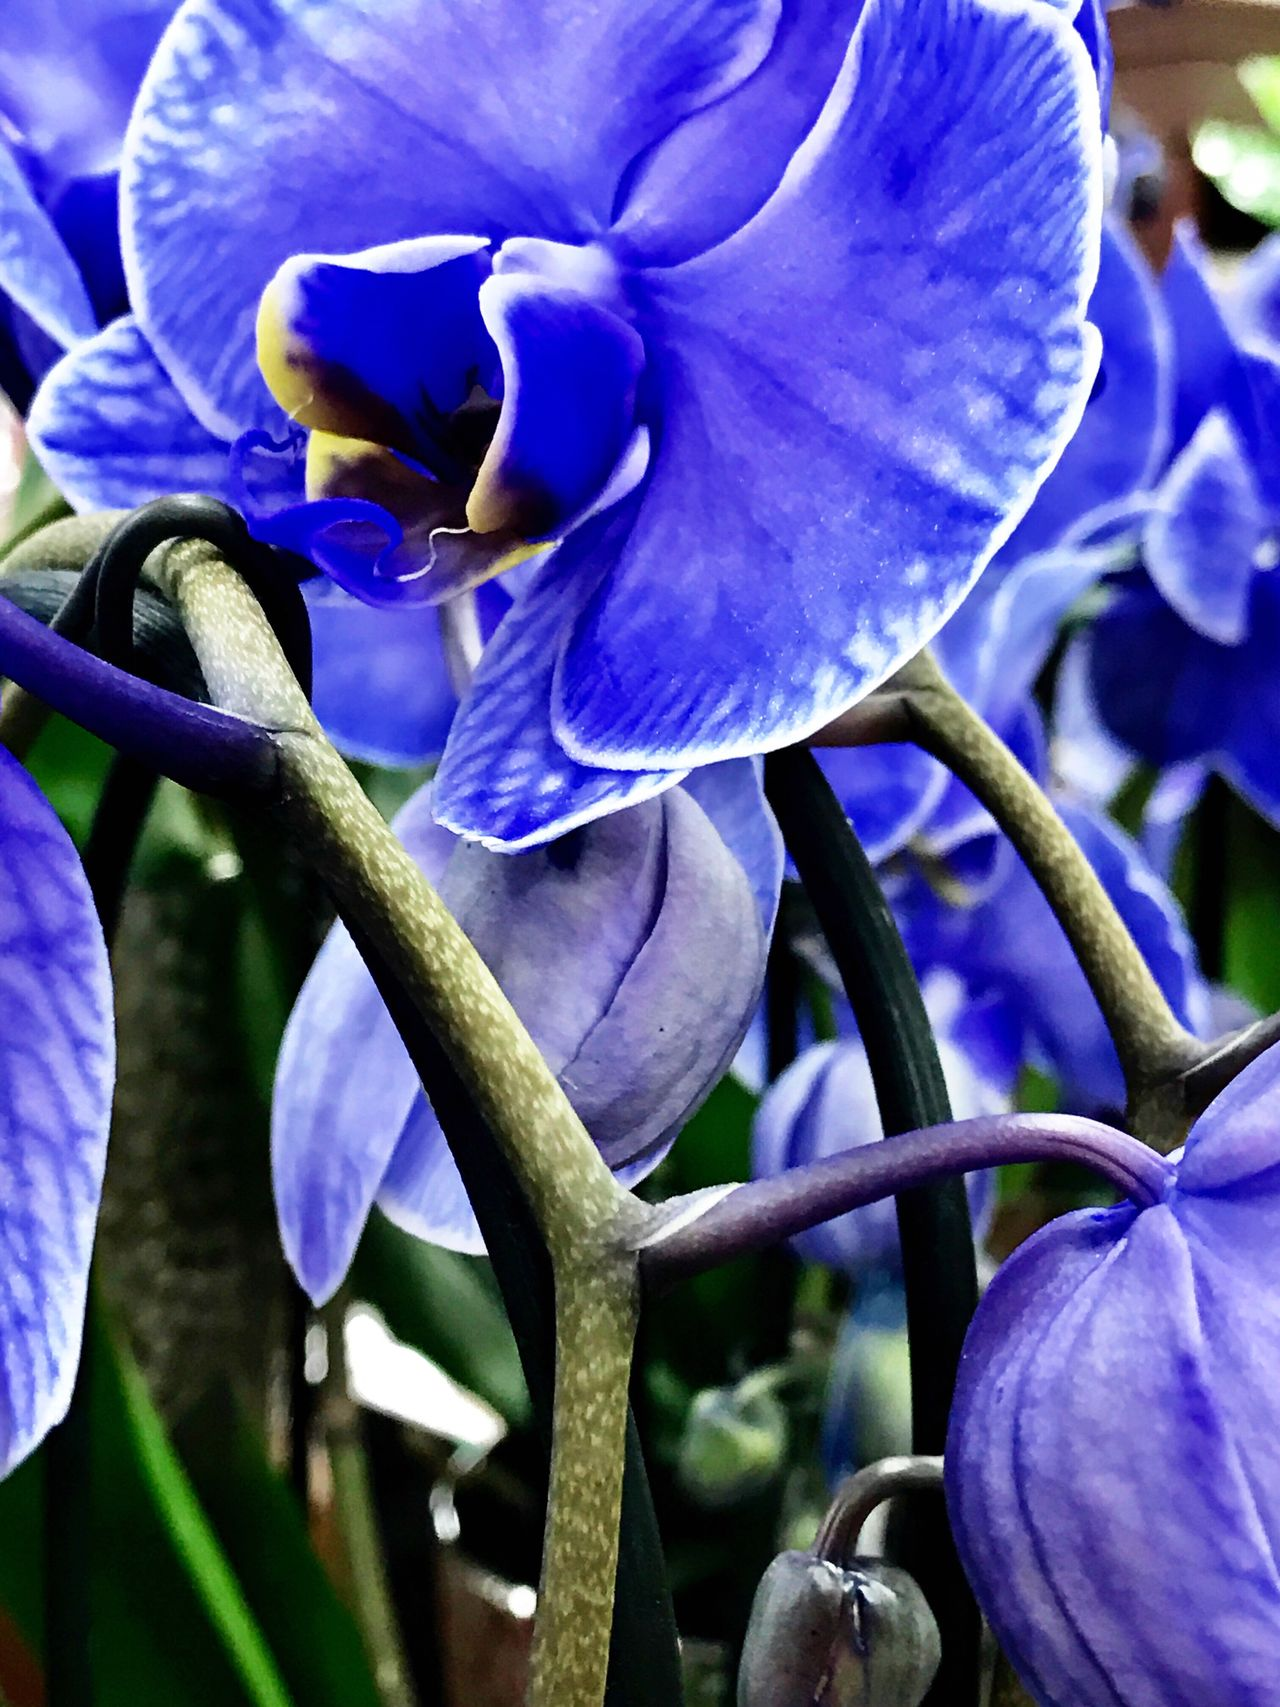 Flower Petal Growth Beauty In Nature Purple Nature Blue Flower Head Plant Close-up Fragility No People Freshness Blooming Iris - Plant Outdoors Day Full Frame Green Color Leaf